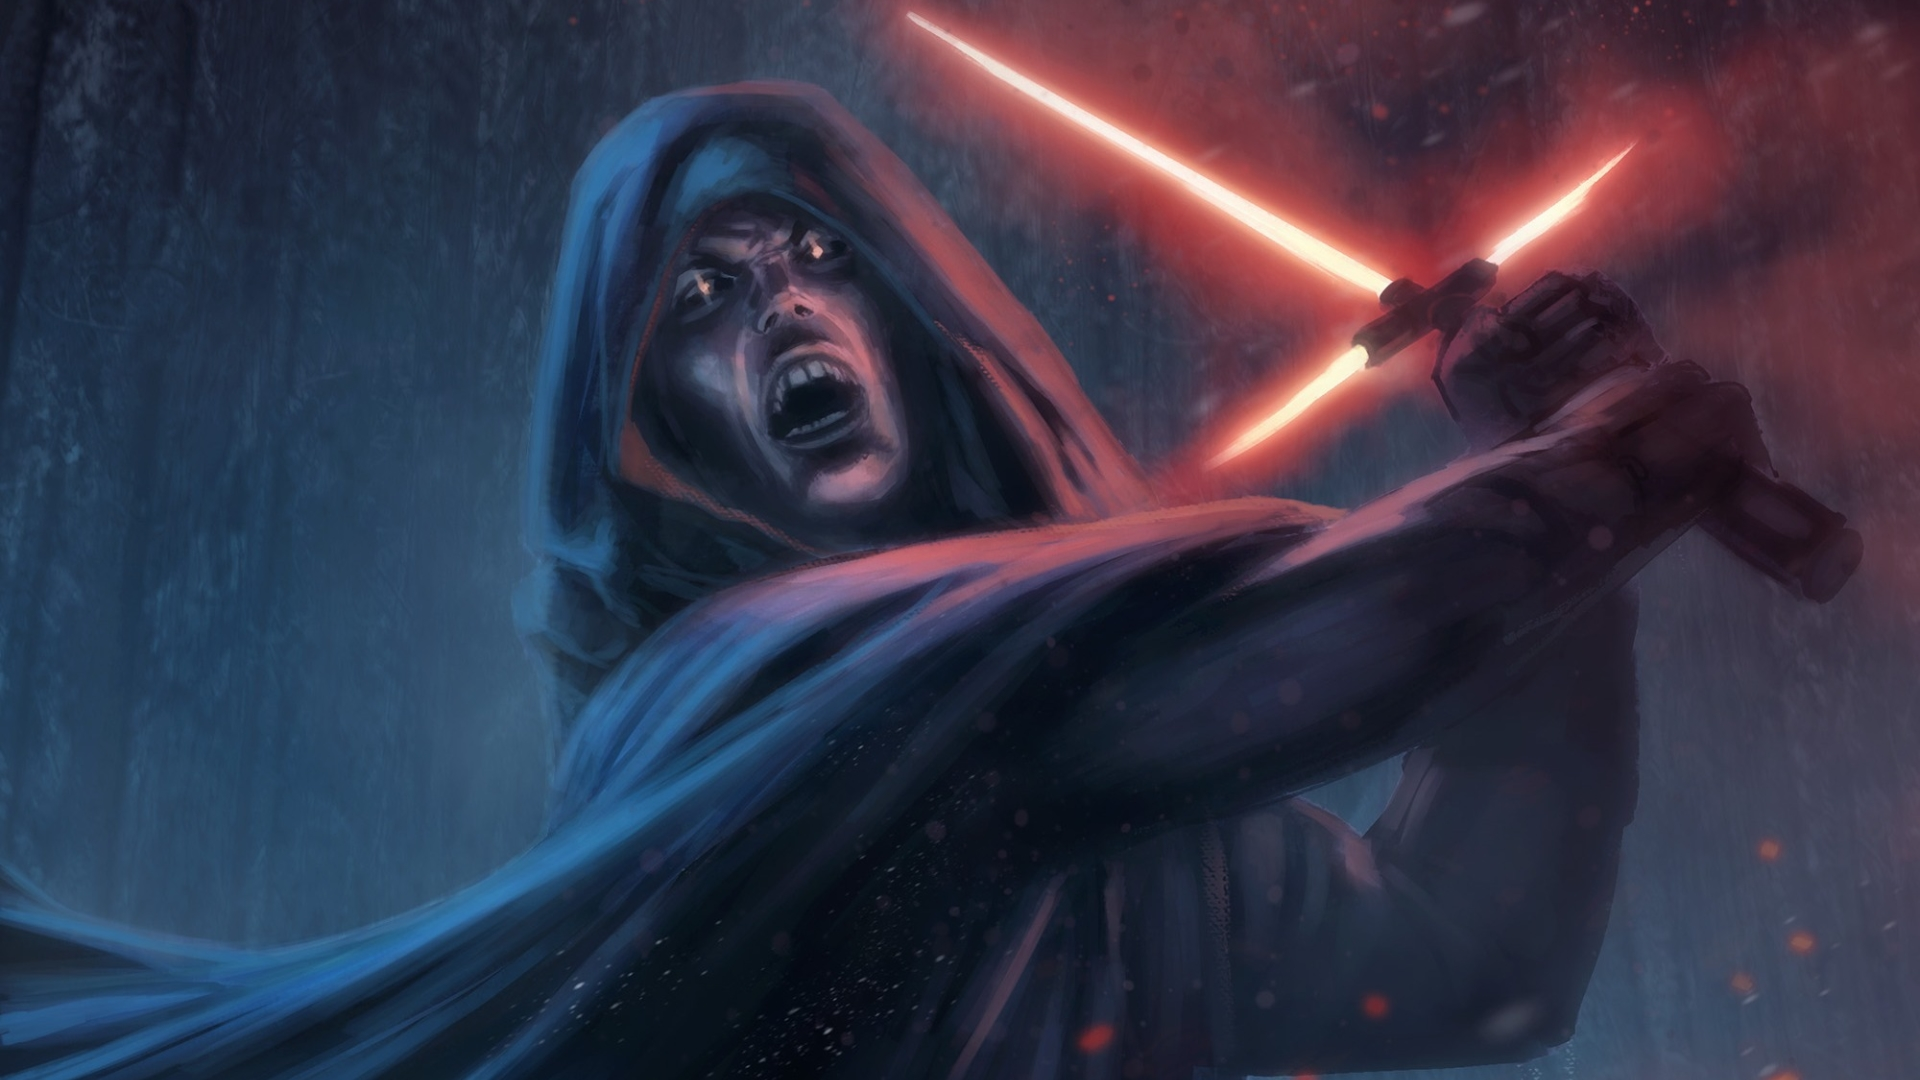 1920x1080 Star Wars Episode Vii The Force Awakens Sith